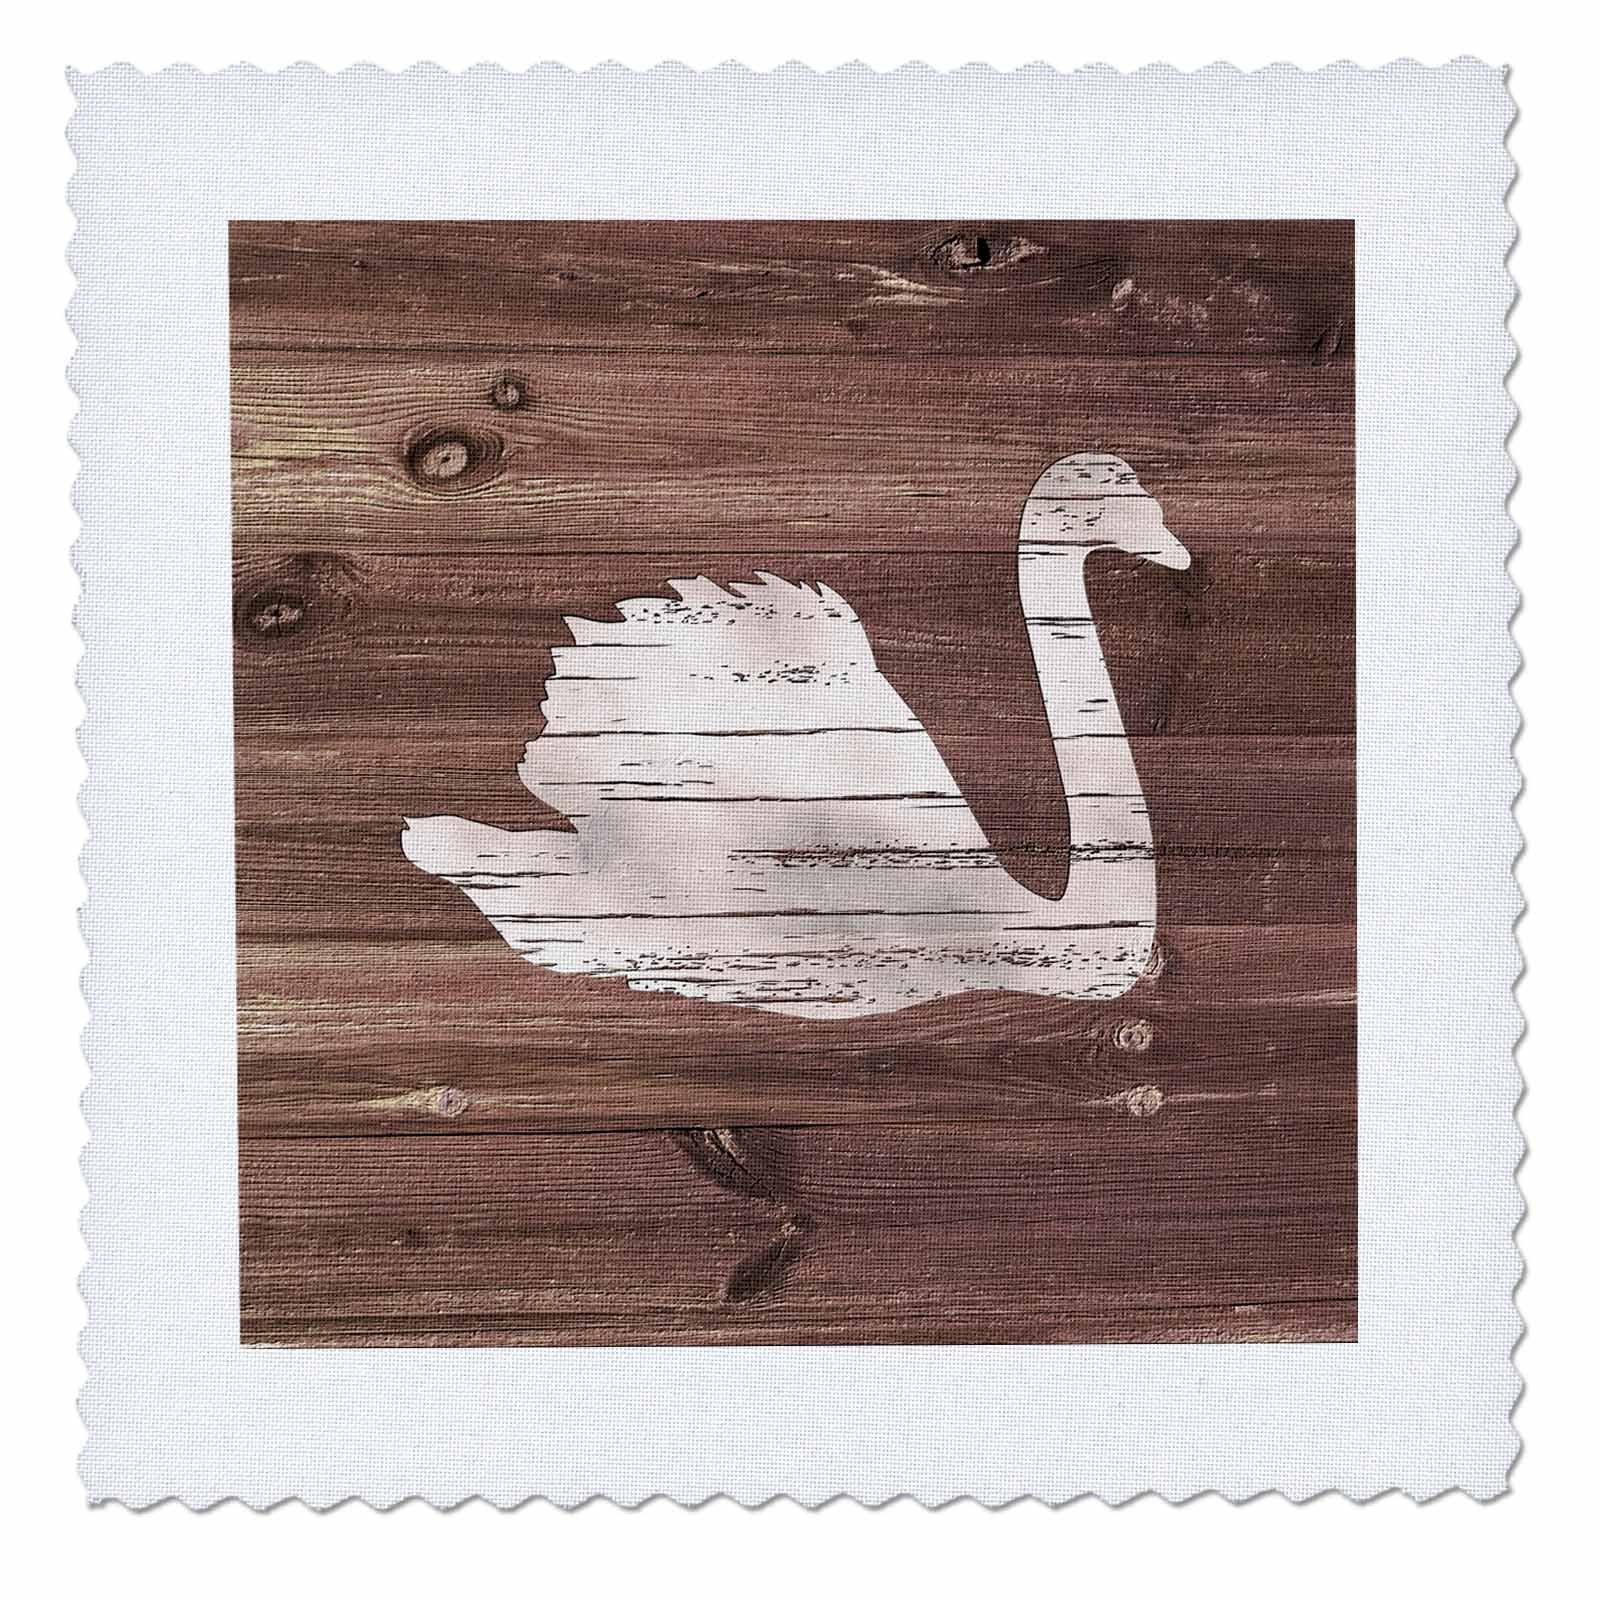 3dRose Russ Billington Designs - White Painted Swan on Brown Weatherboard- Not Real Wood - 20x20 inch quilt square (qs_261839_8)